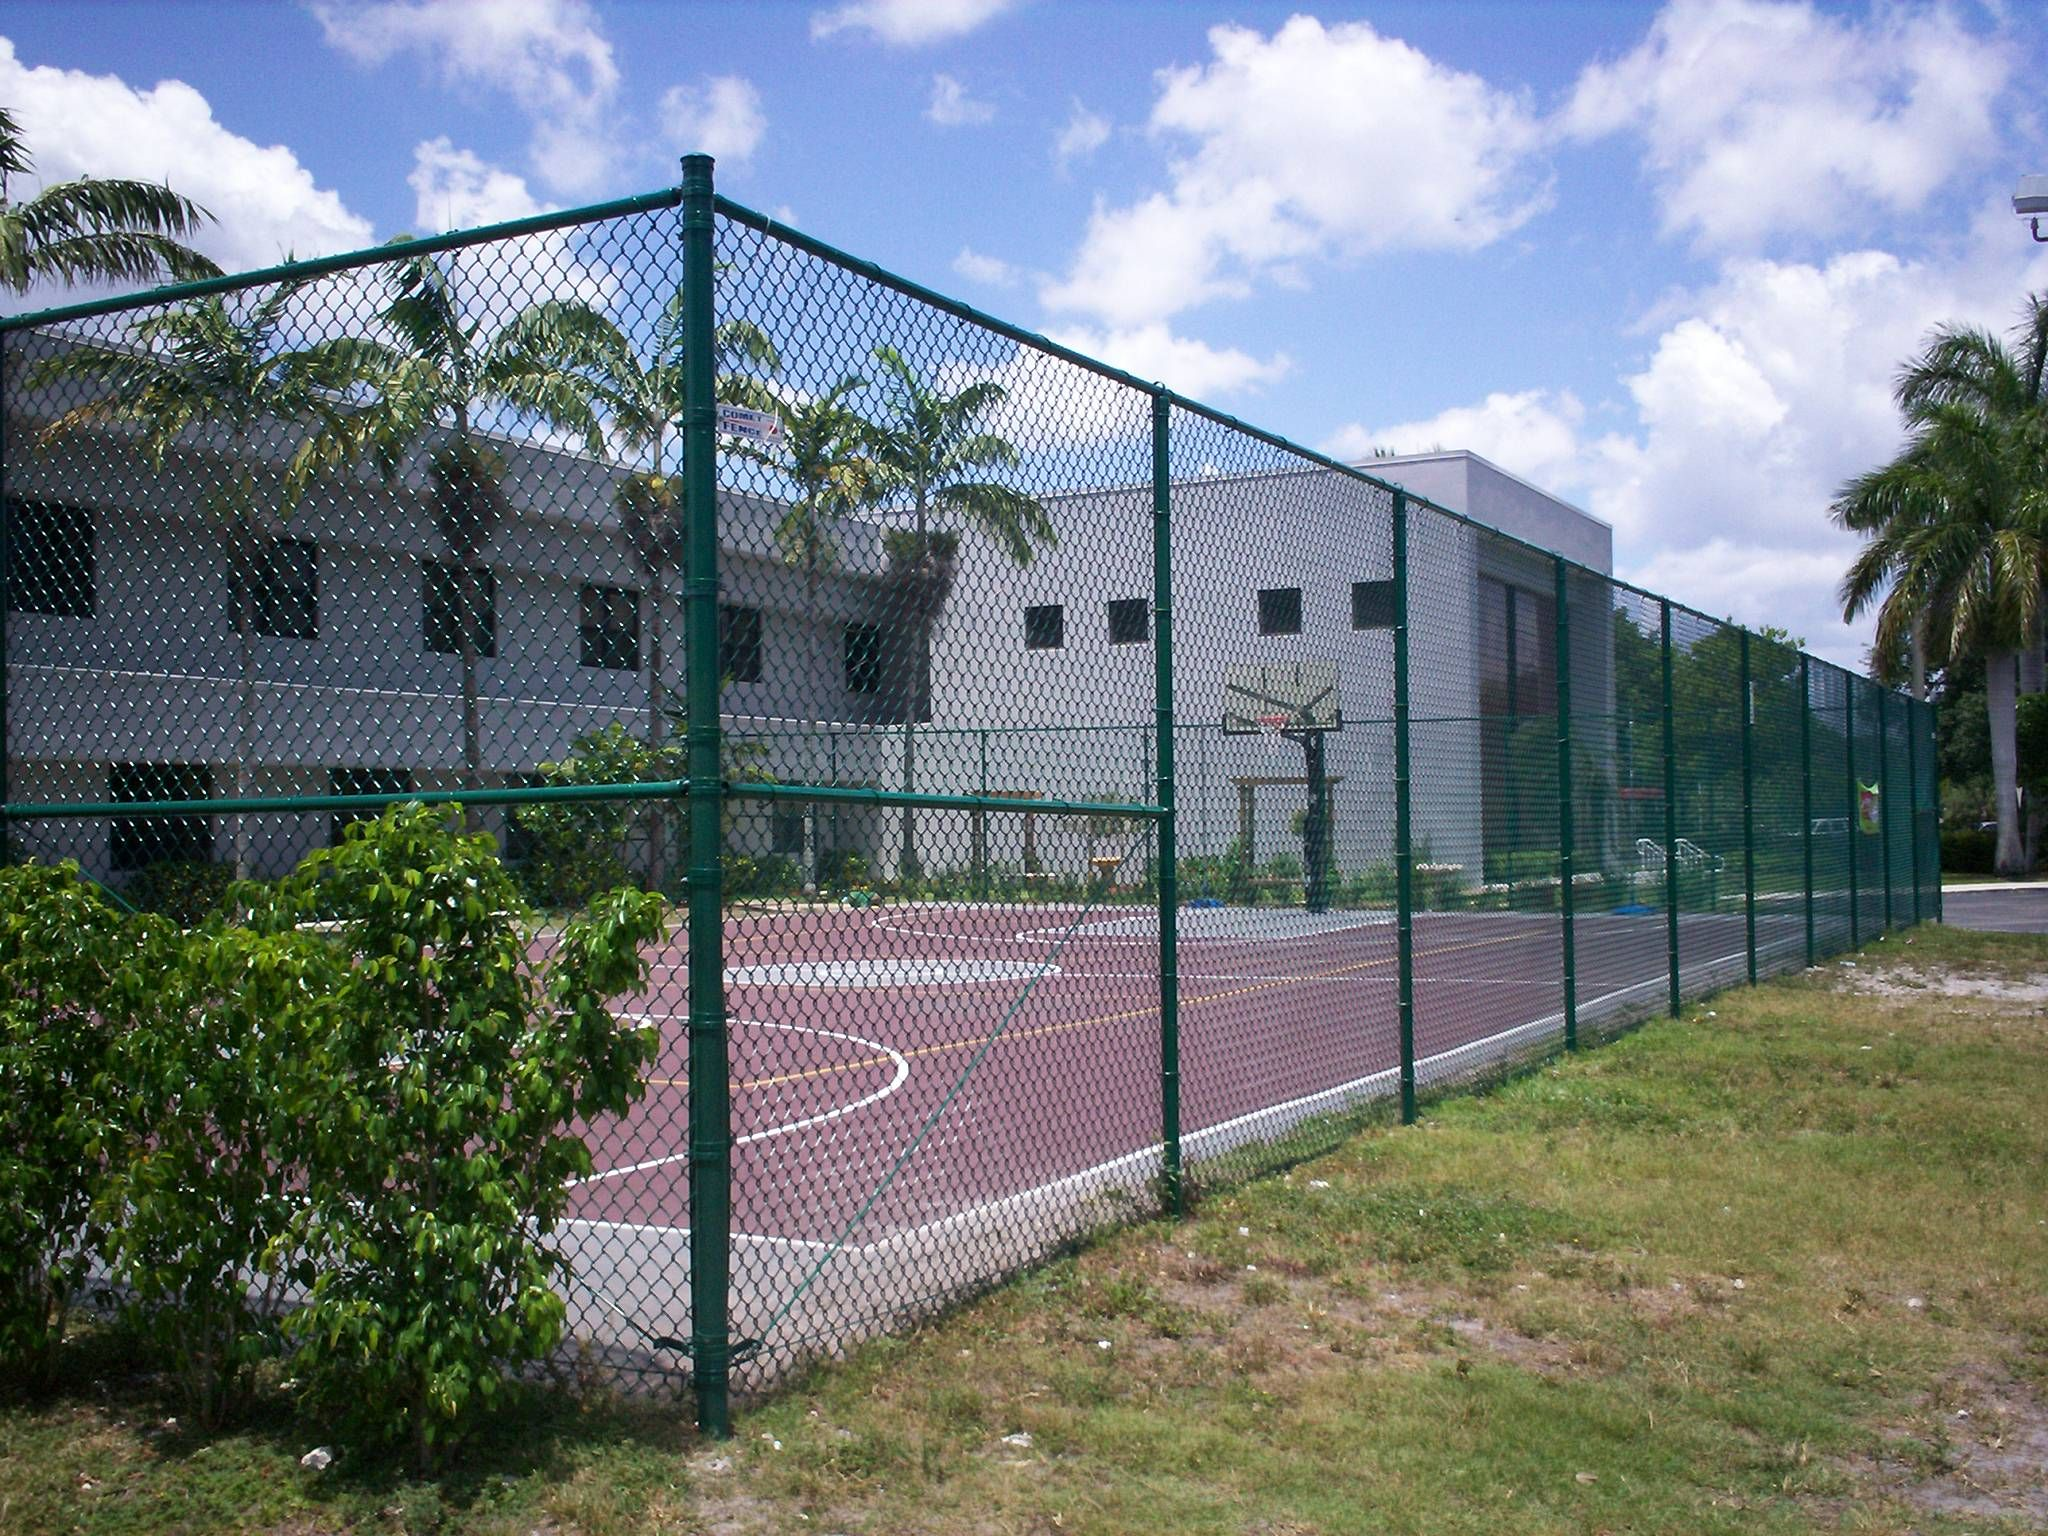 Tennis Court Fence 10 Ft High Chain Link Black Green Chain Link Fence Installation Chain Link Fence Black Chain Link Fence